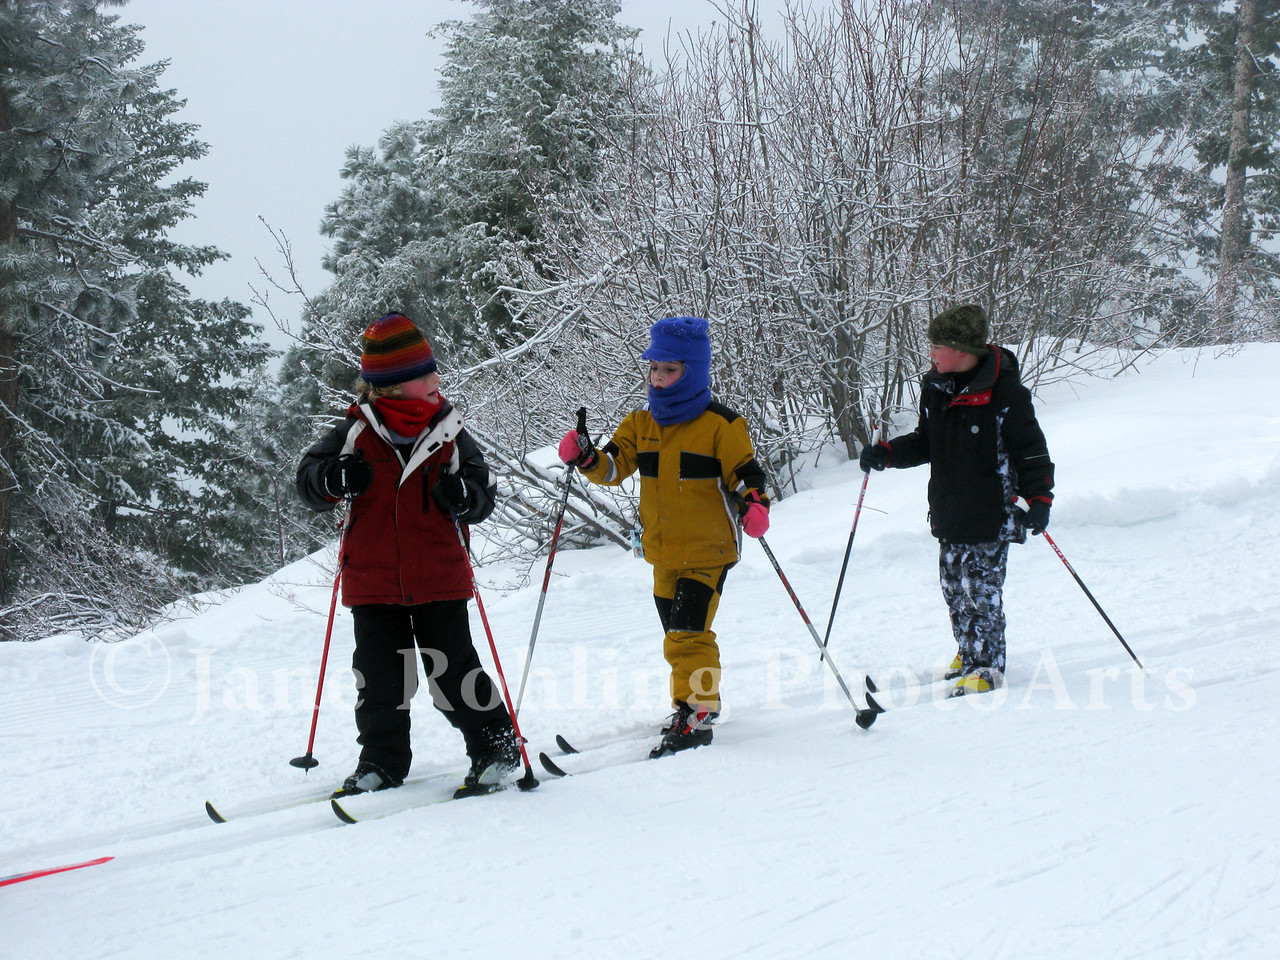 Kids getting their first exposure to cross country skiing during the Snow School program at Bogus Basin Mountain Recreation Area near Boise, Idaho.